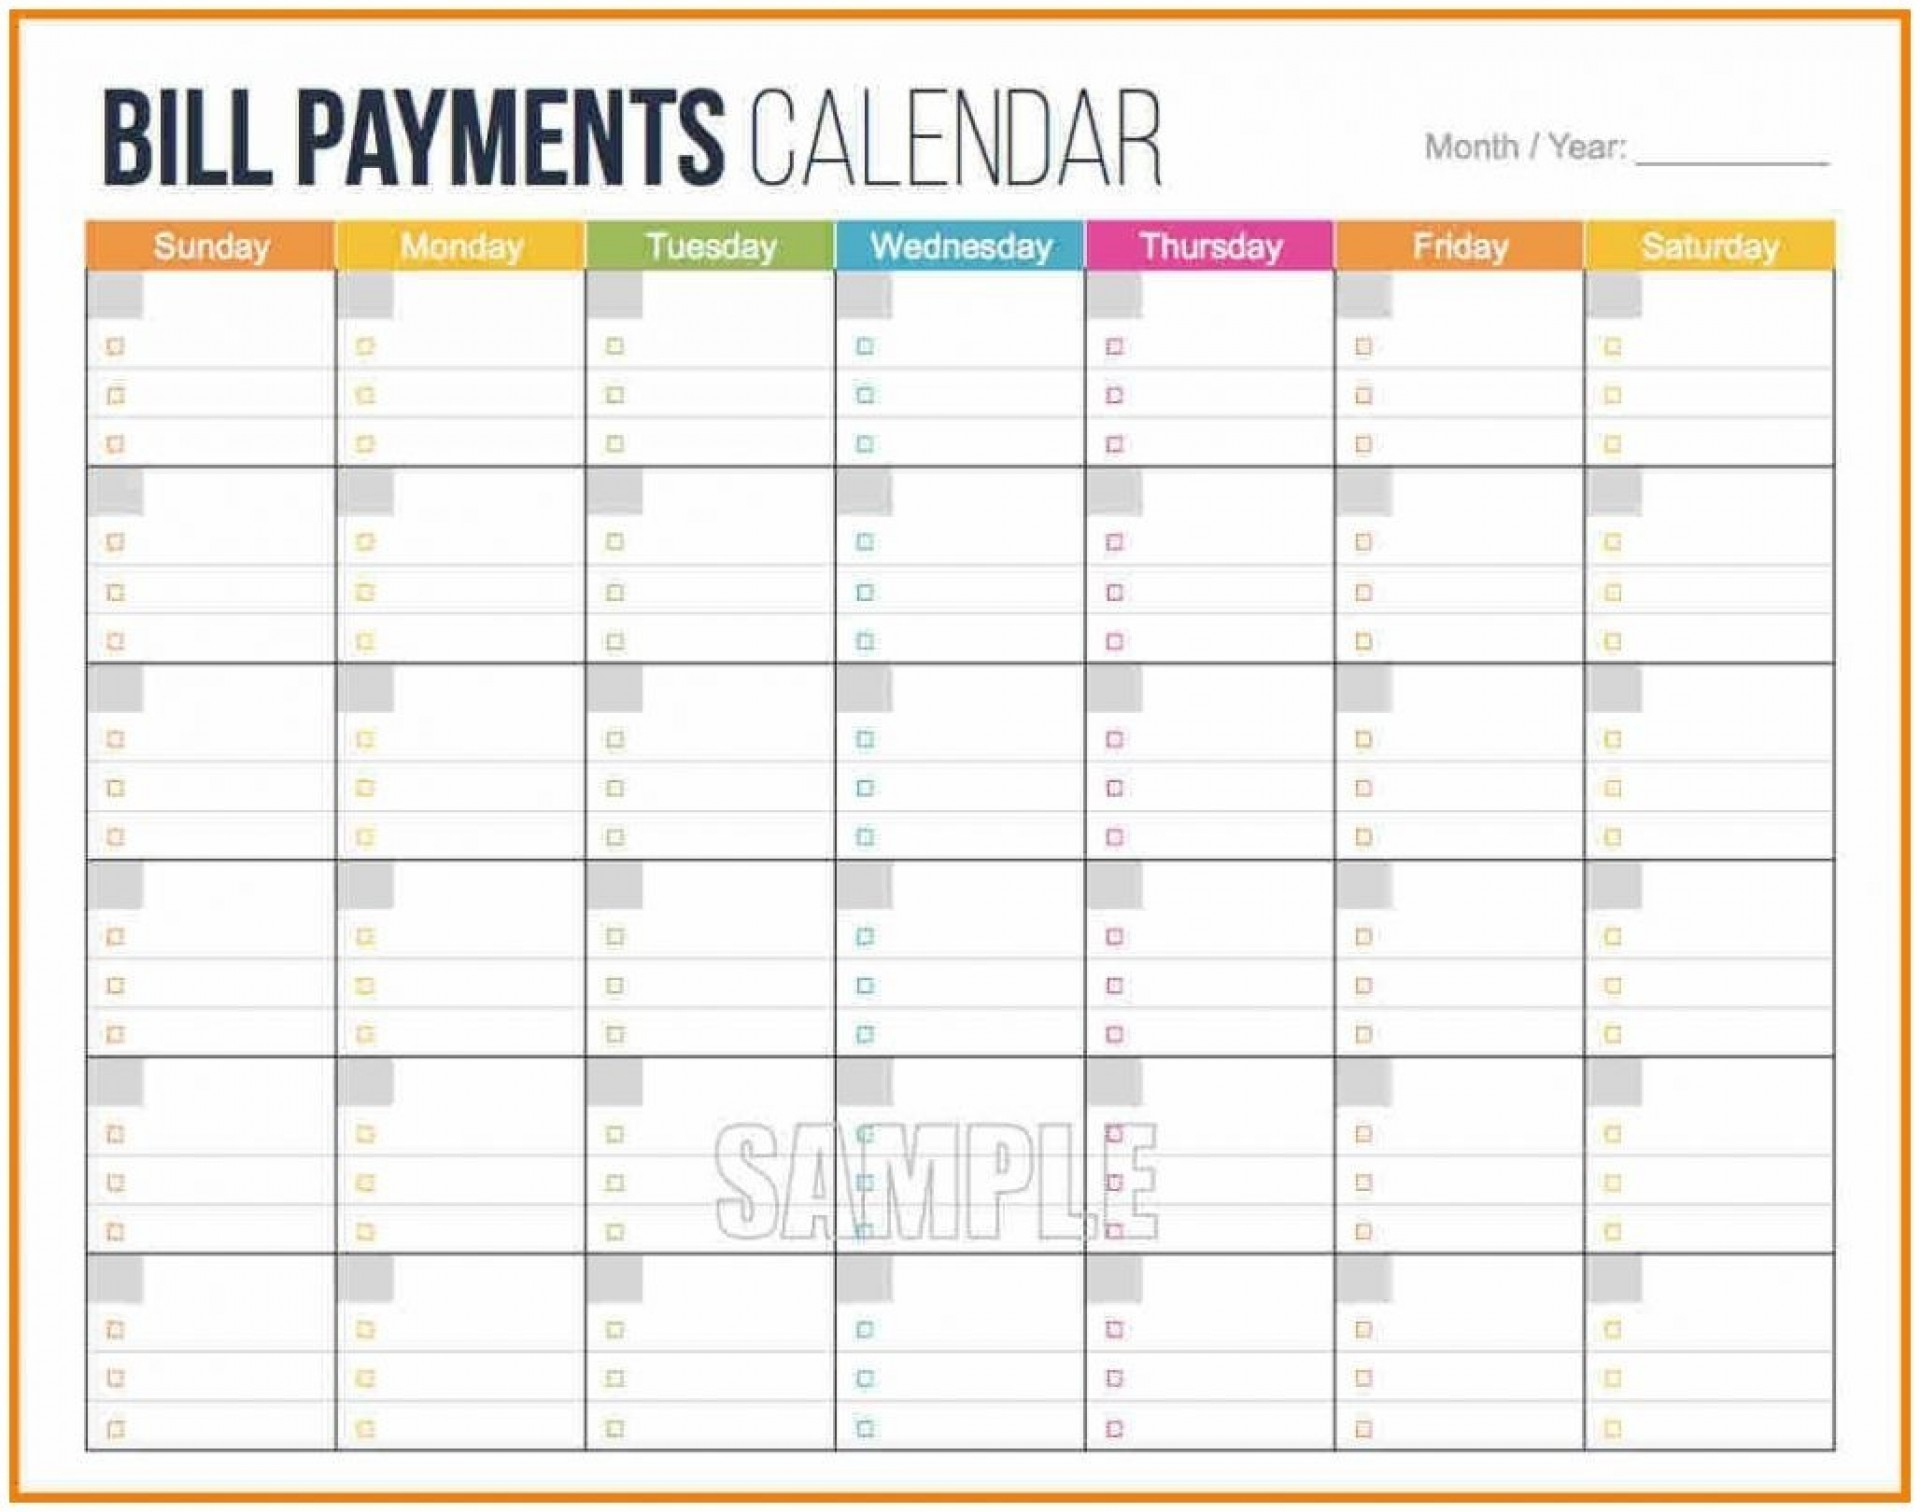 003 Bill Pay Calendar Template Ideas Paying Free Printable for Free Printable Bill Payment Calendar